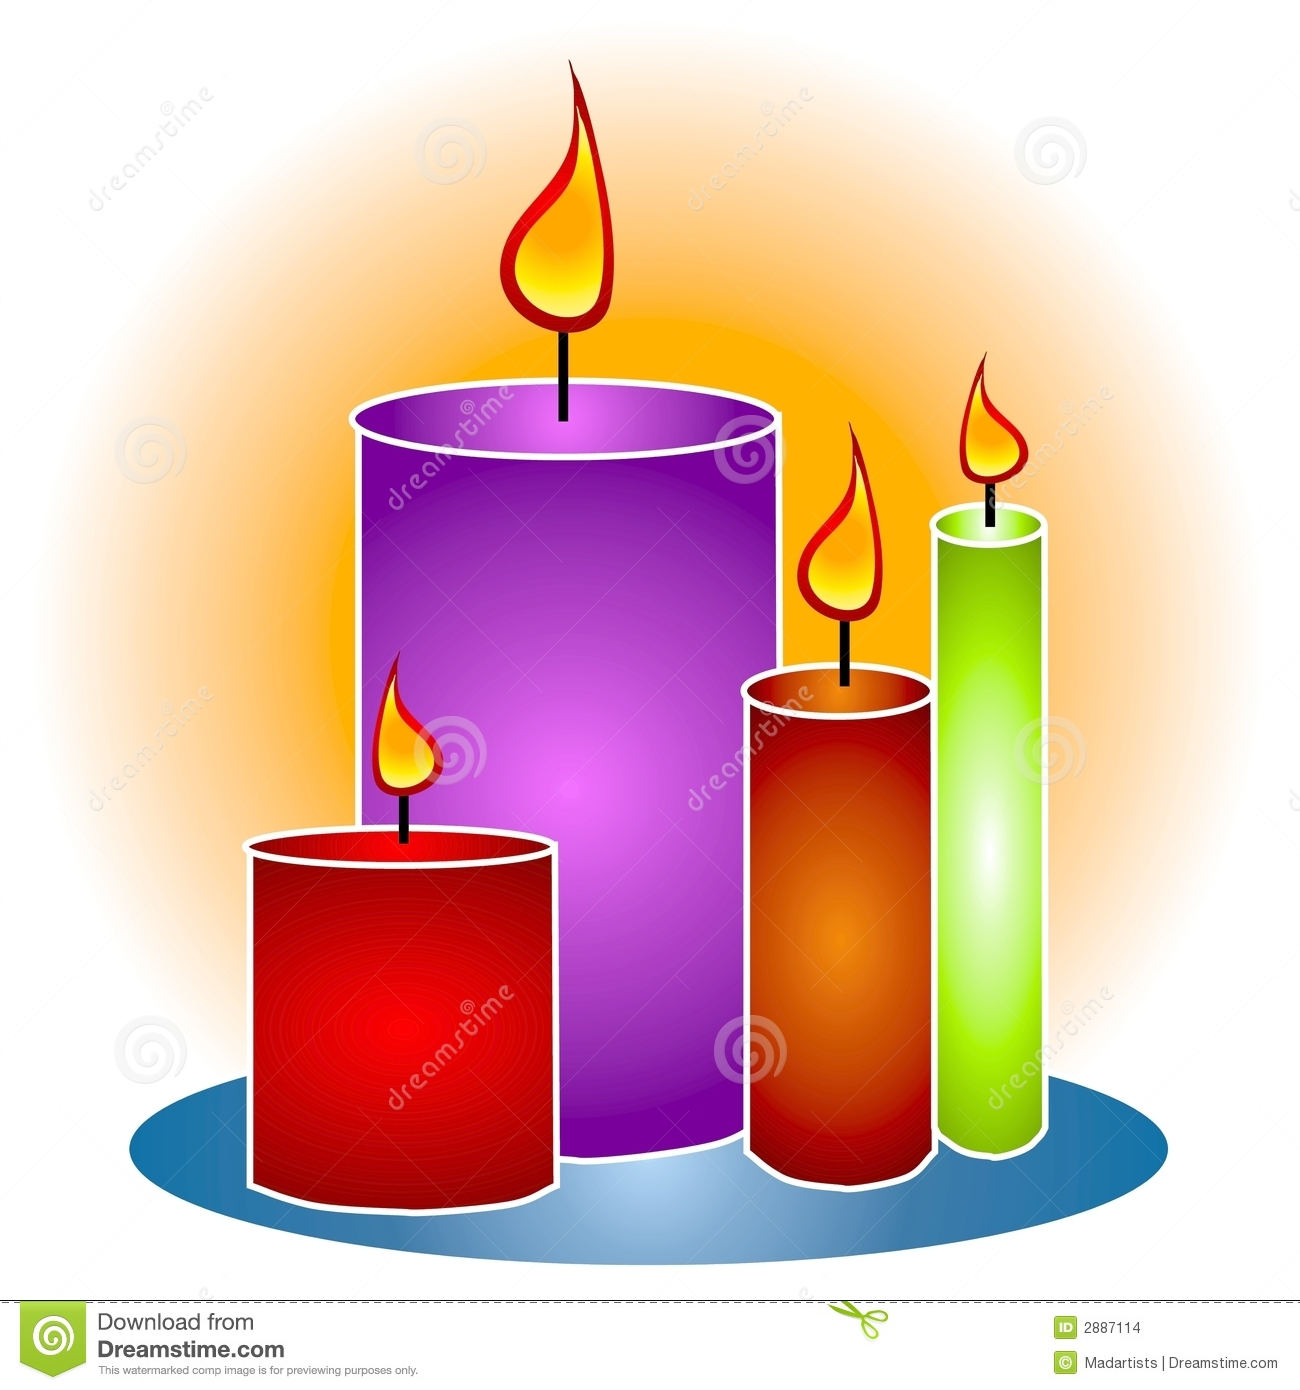 Melting Candle clipart lighted Clipart Image Candle Panda Free